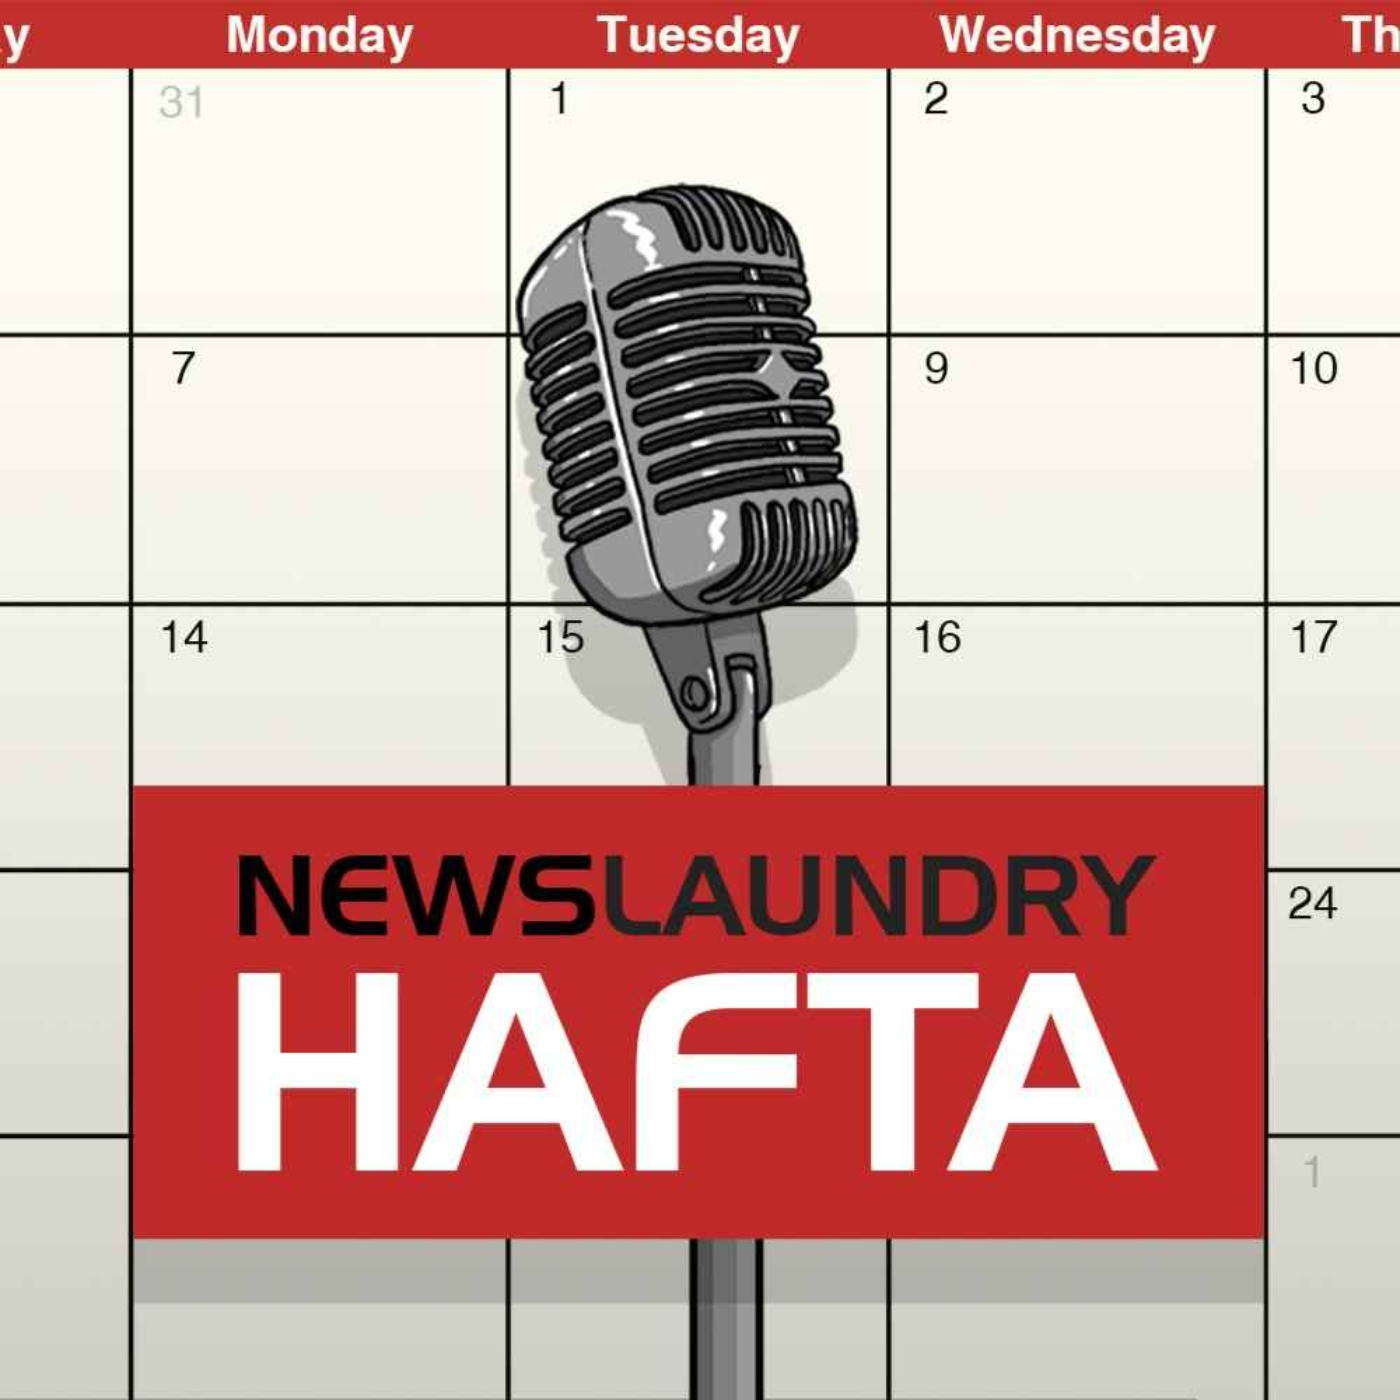 Hafta 297: Caste violence in India, media coverage of Hathras, and the Bihar Assembly election